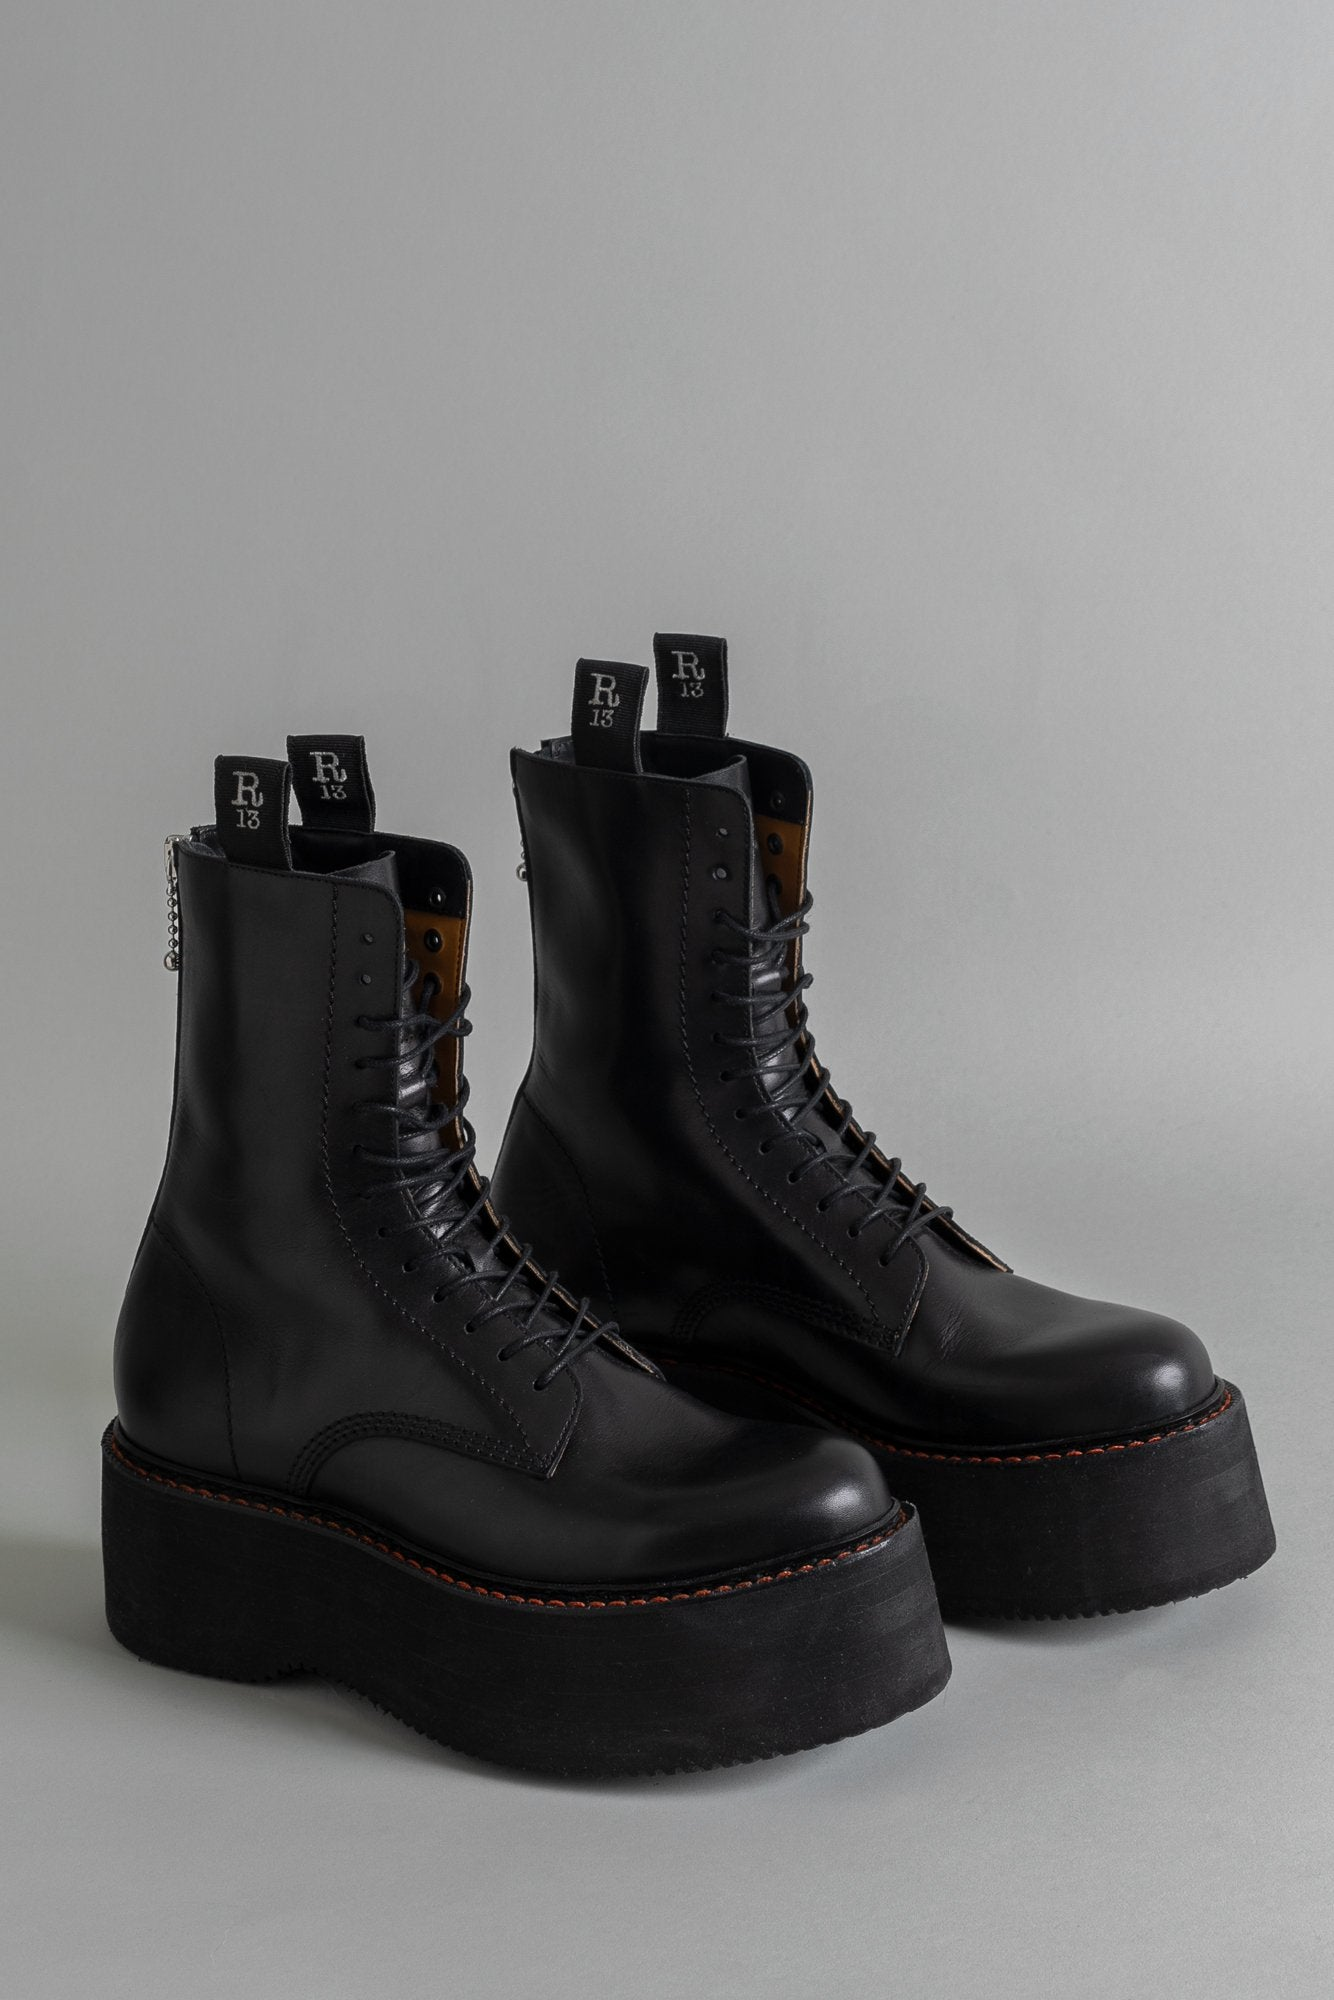 R13 X-STACK BOOT - BLACK